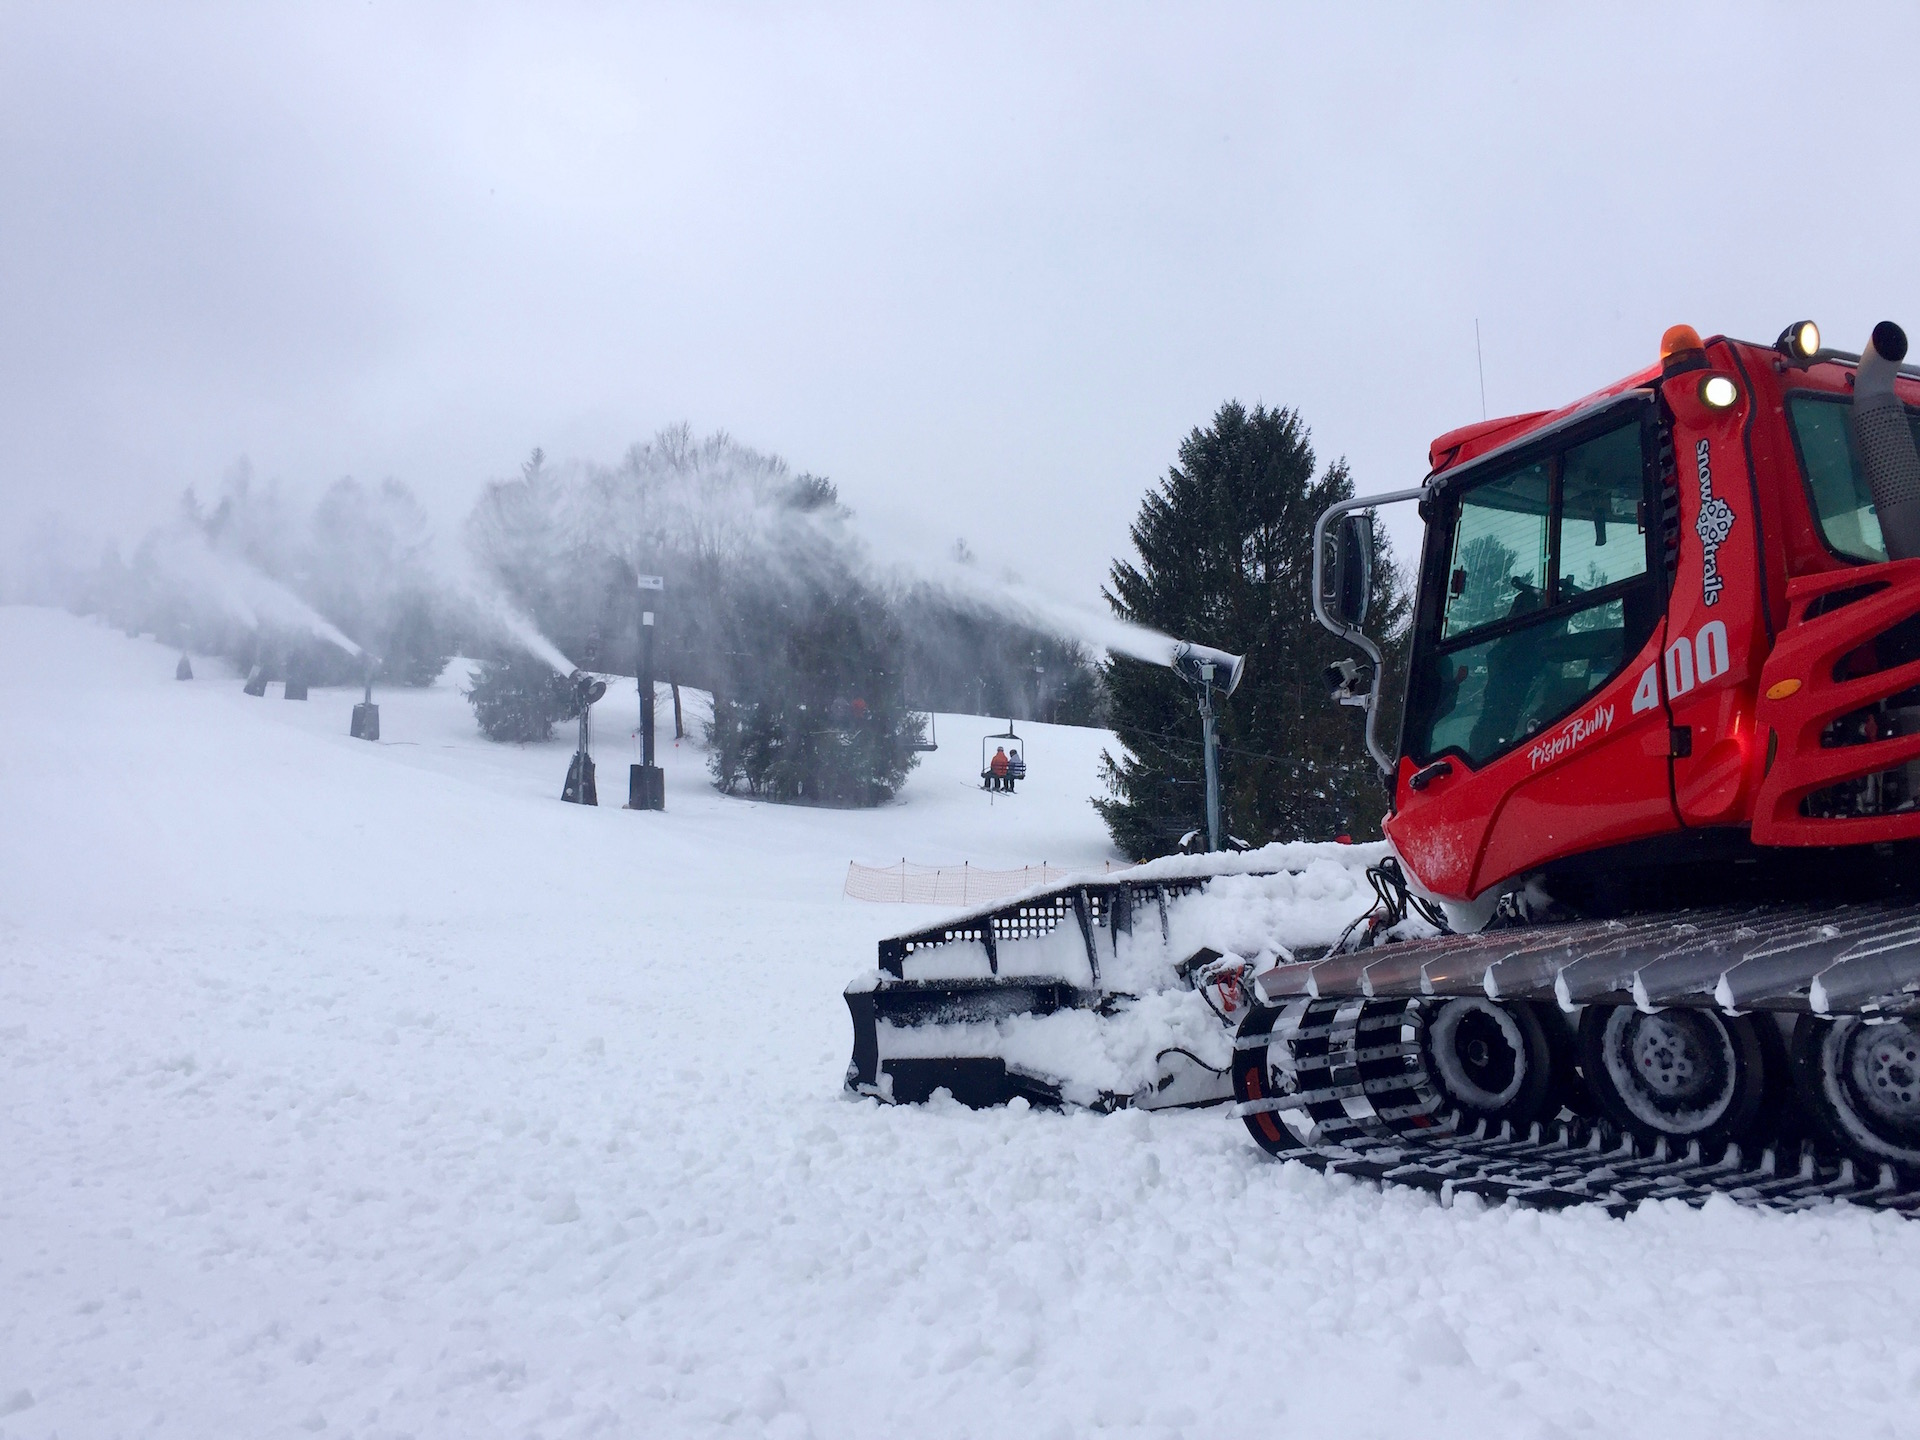 Snow-Trails-Snowmaking-Grooming_Pisten-Bully-400